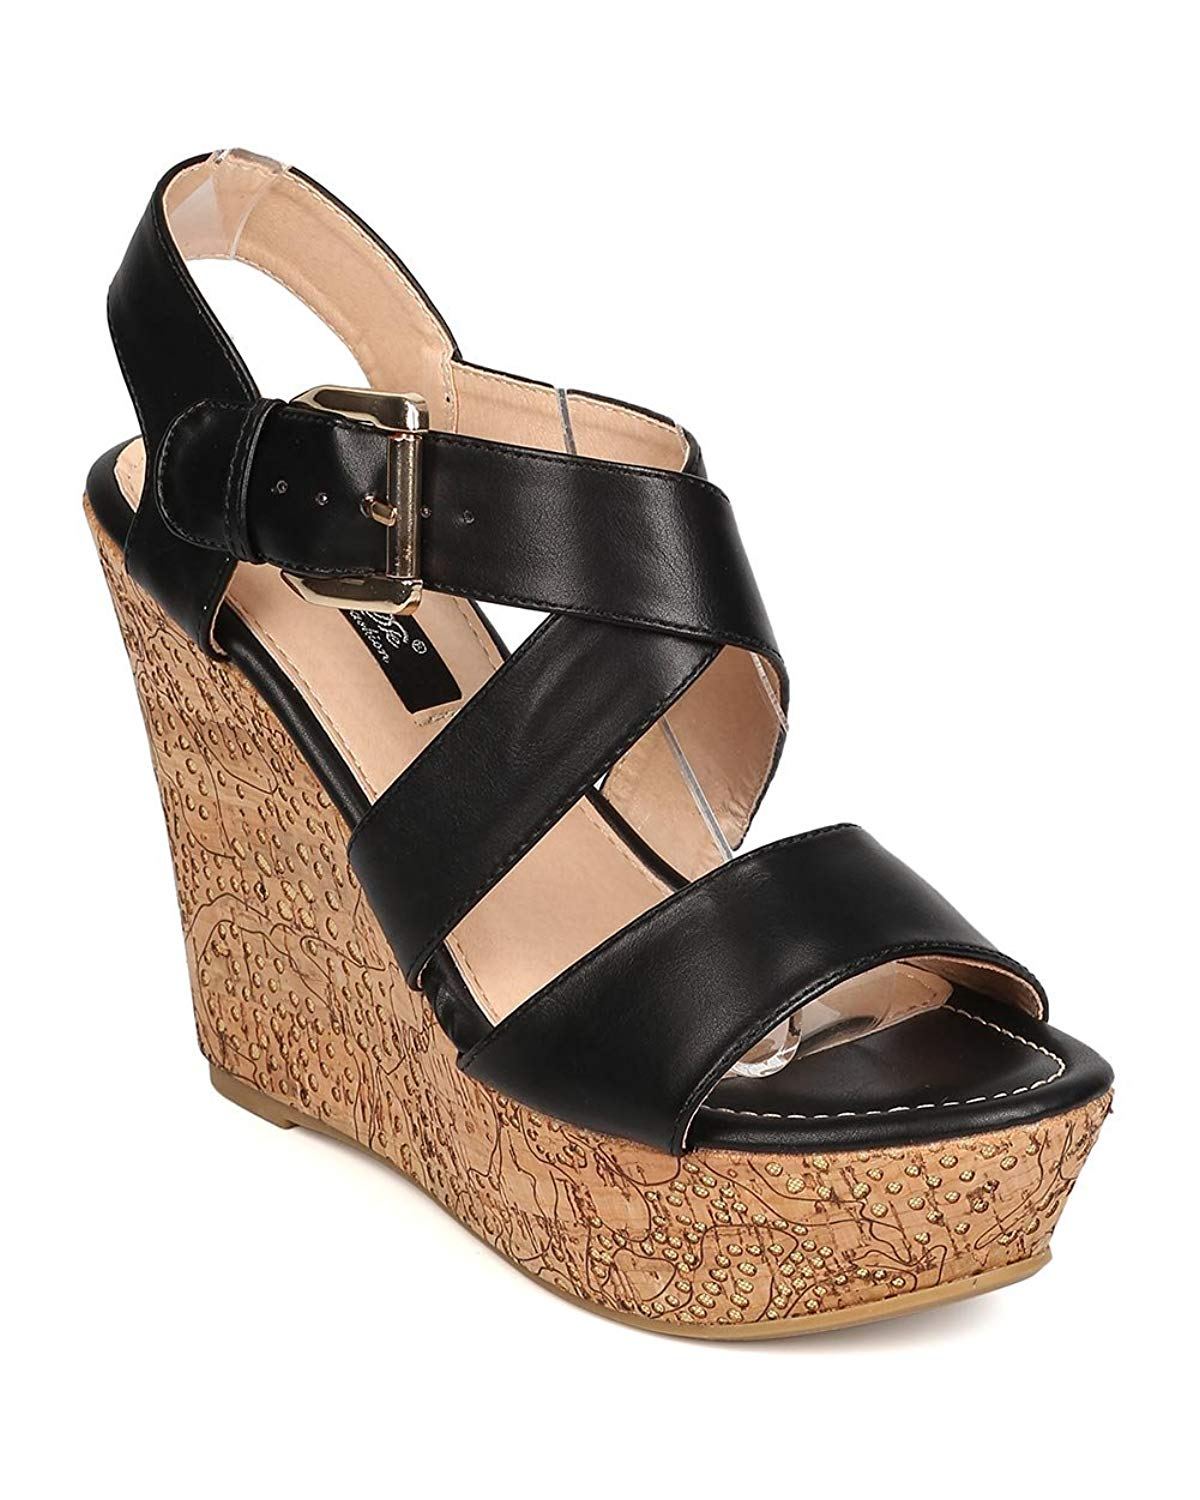 da2ef6133e4d Get Quotations · DbDk Women Leatherette Open Toe Cross Strap Cork Platform  Wedge Sandal FA93 - Black